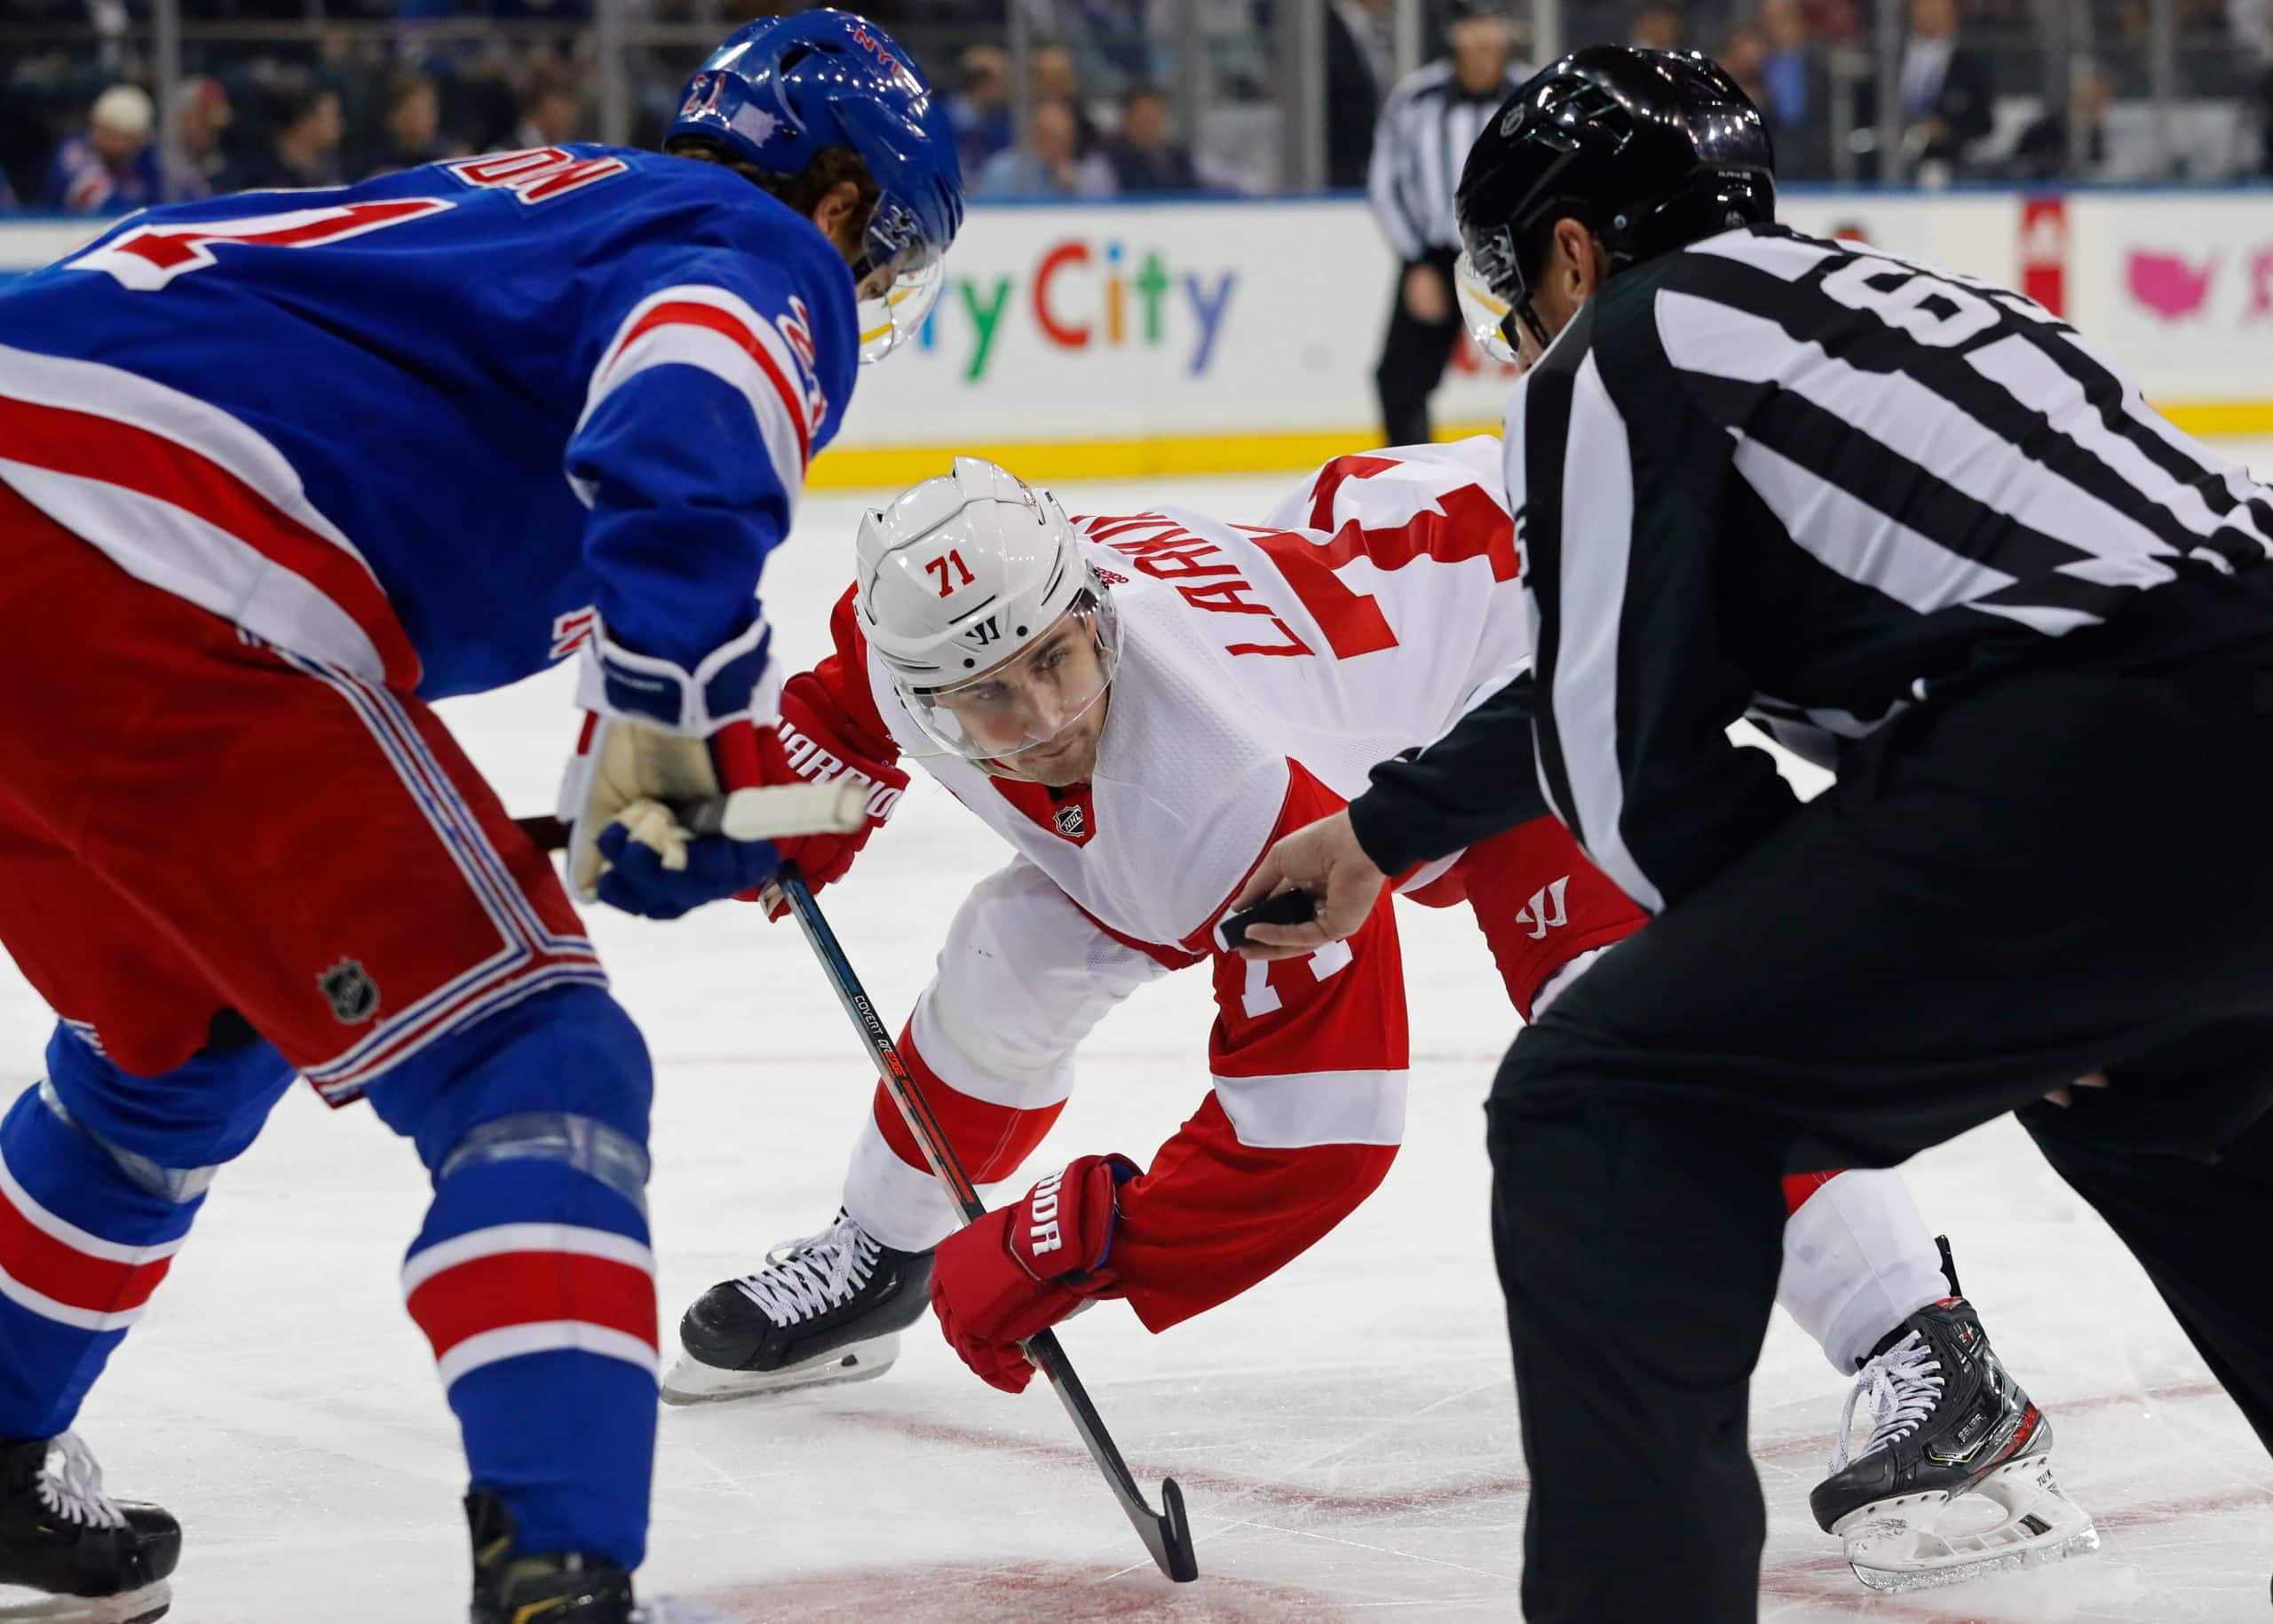 Red Wings may entertain trading center Dylan Larkin; a name the Rangers should watch - Forever Blueshirts: A site for New York Rangers fanatics